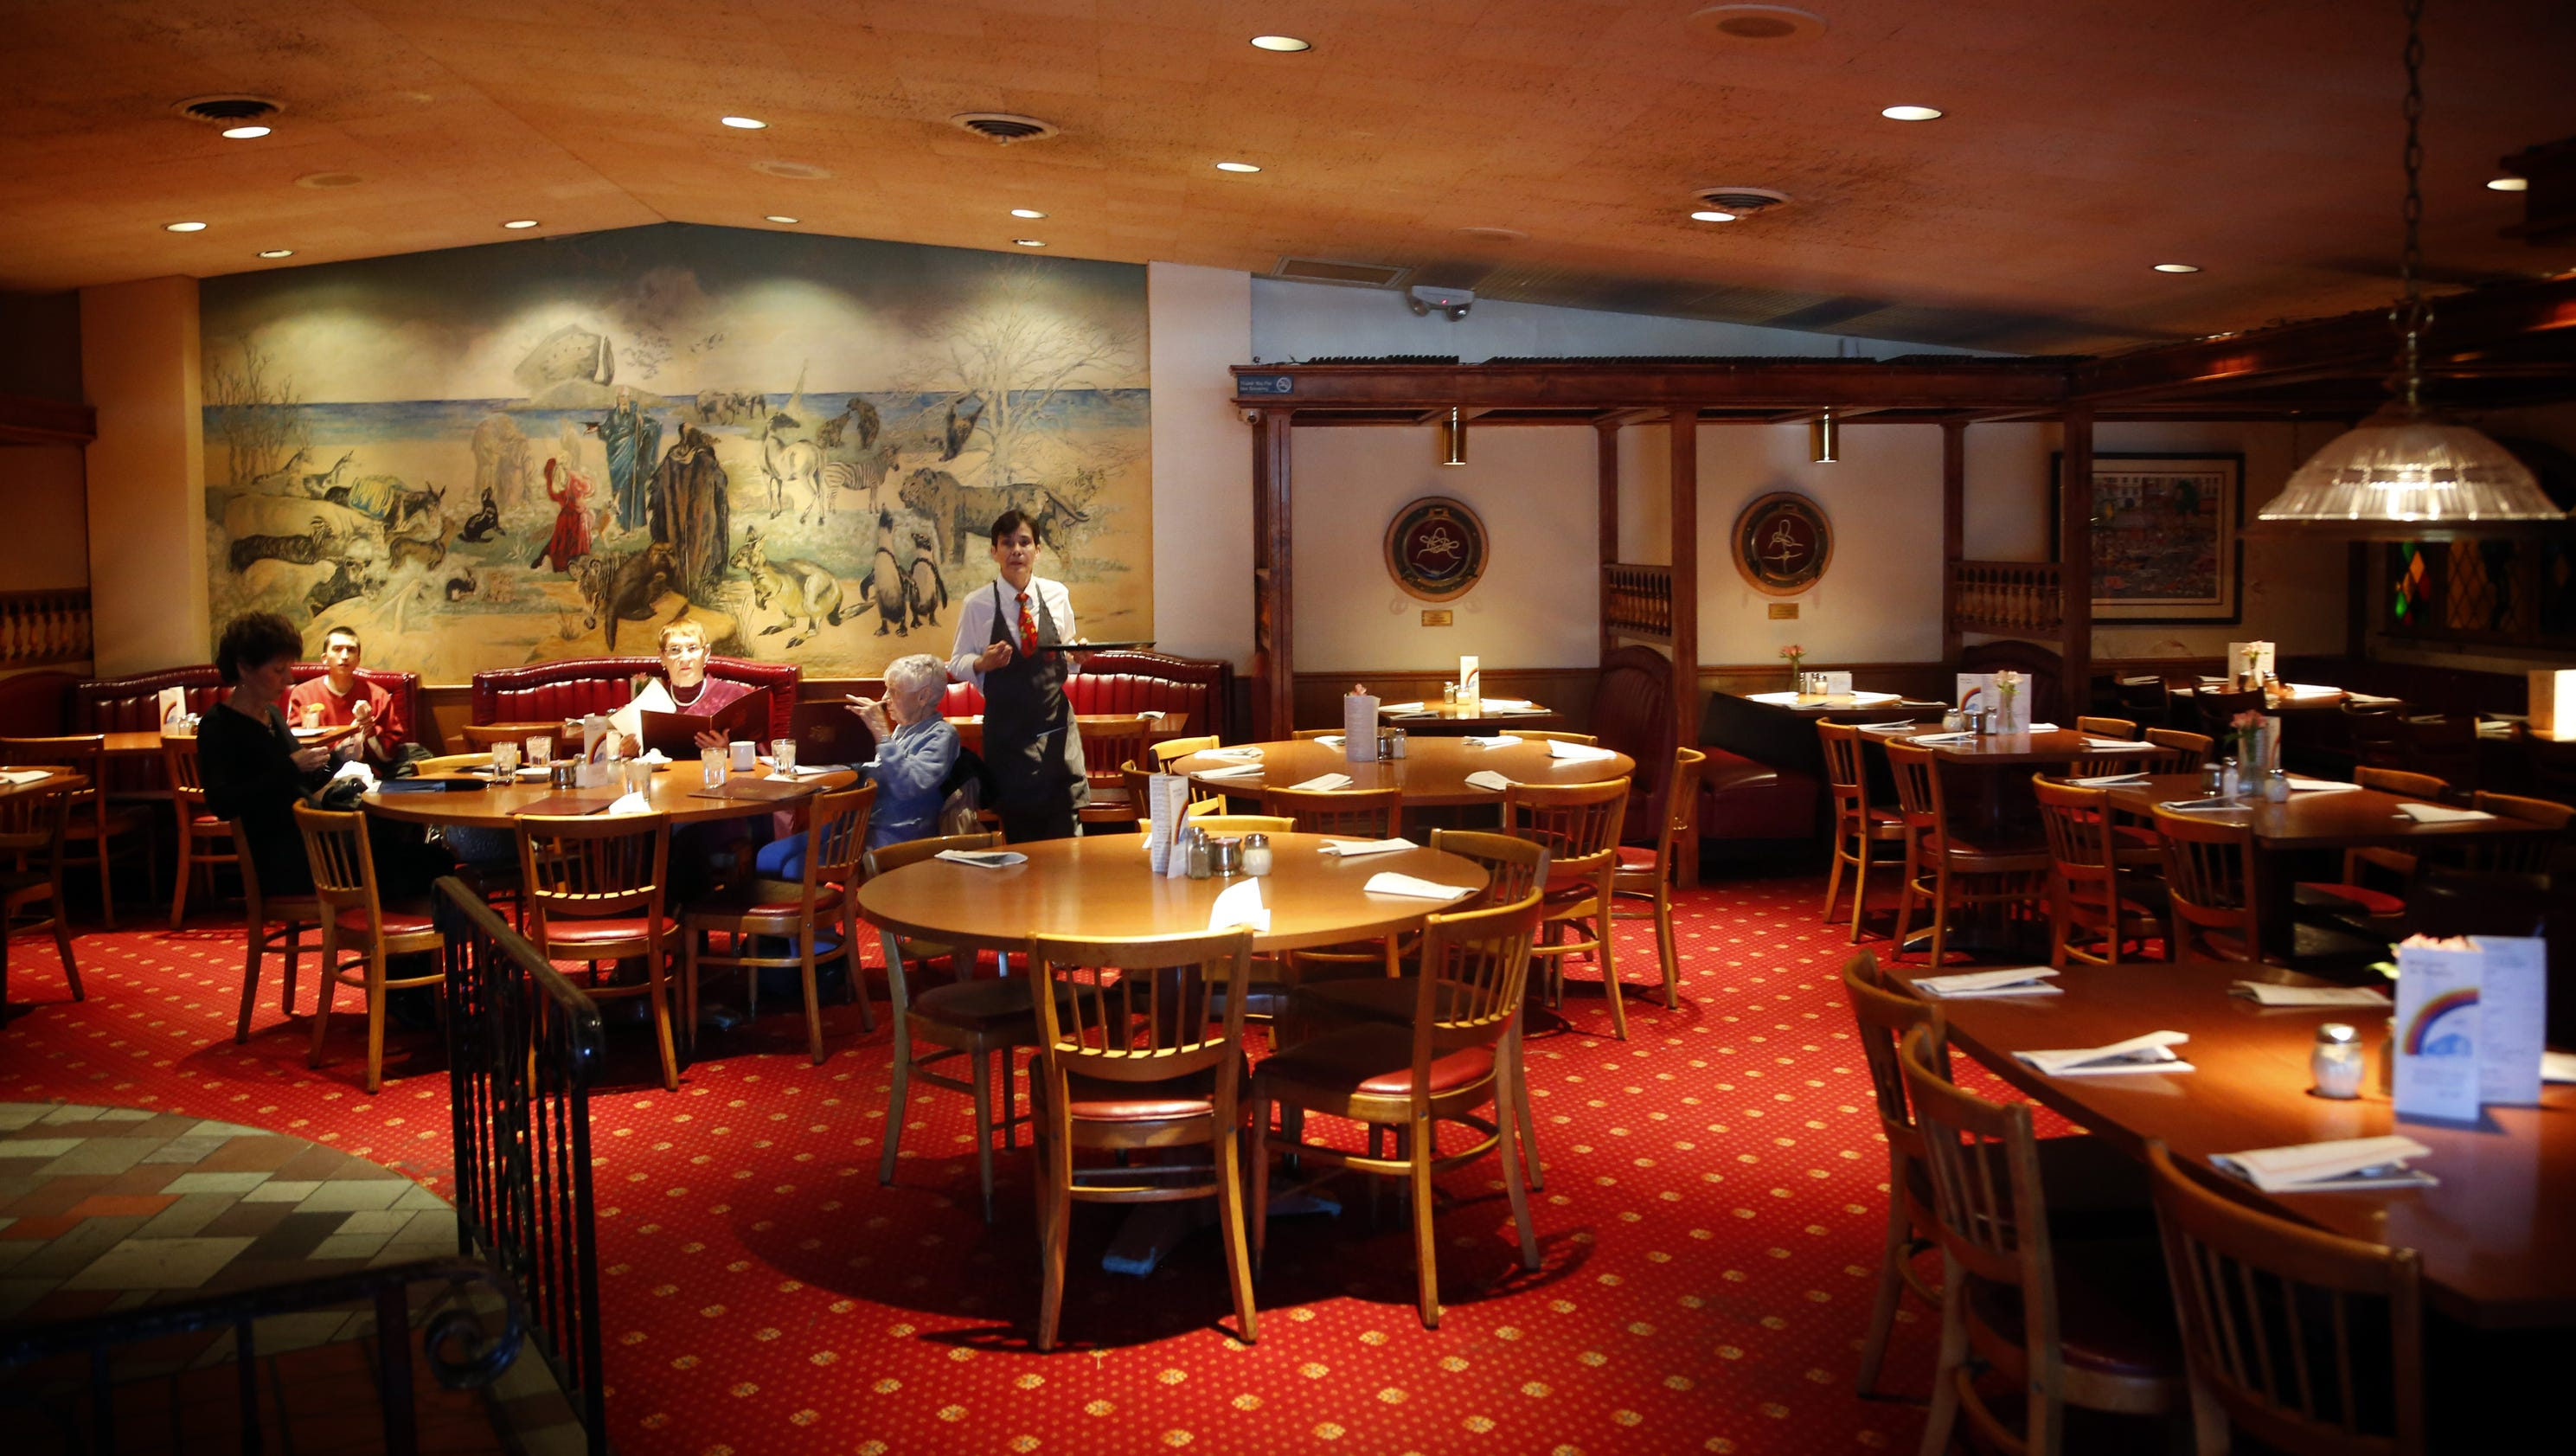 11 classic des moines restaurants to keep on your dining